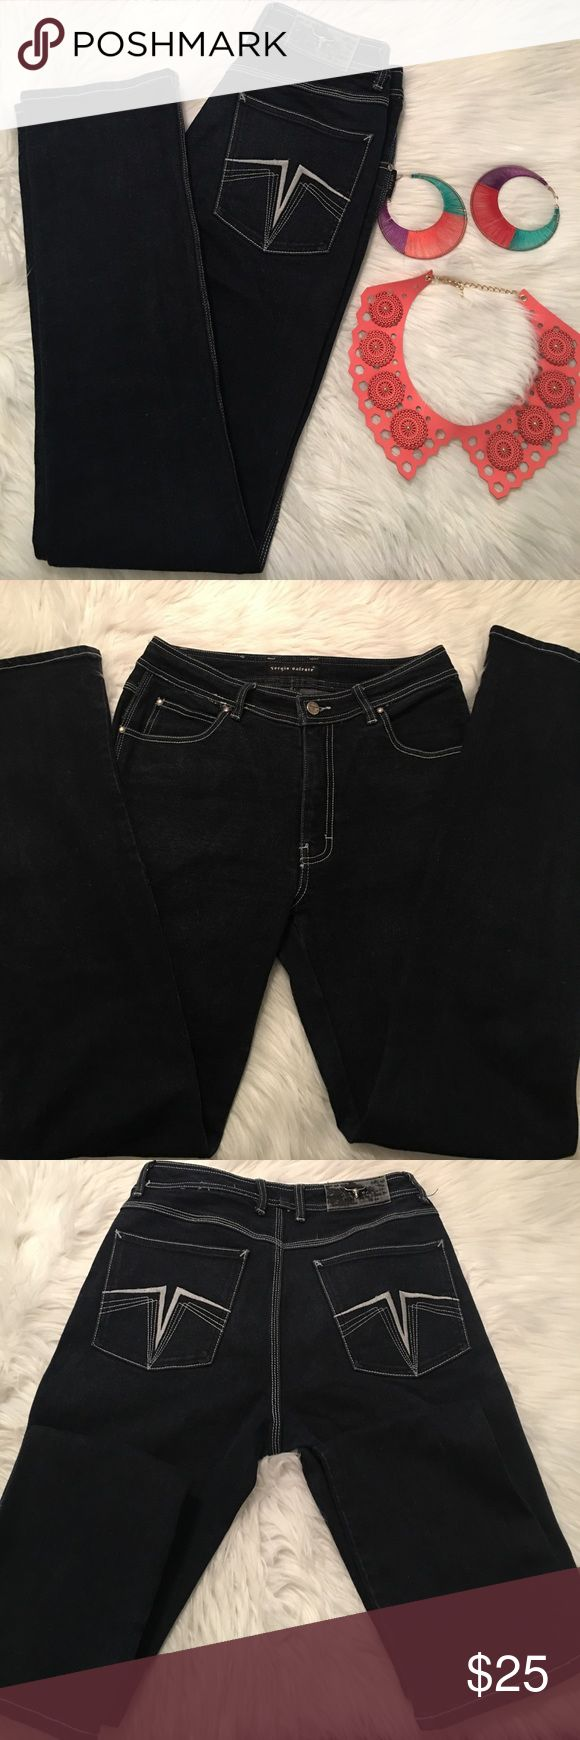 Vintage Sergio Valente Denim Jeans Vintage Sergio Valente Denim Jeans. Will fit all your curves. A perfect addition to your wardrobe. Sergio Valente Jeans Straight Leg